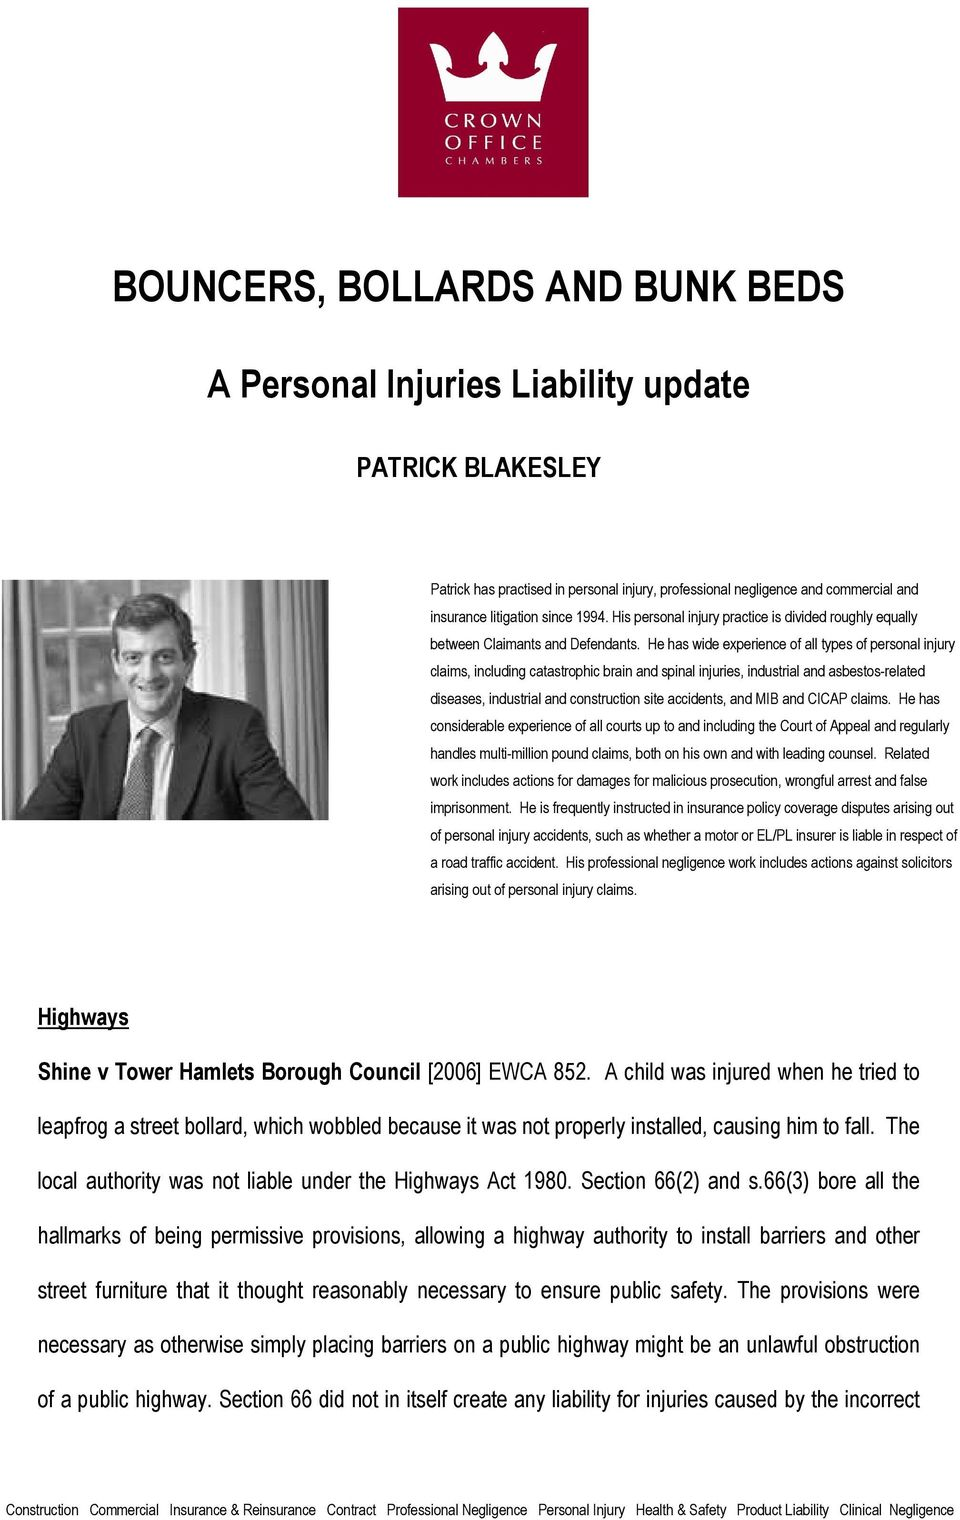 He has wide experience of all types of personal injury claims, including catastrophic brain and spinal injuries, industrial and asbestos-related diseases, industrial and construction site accidents,